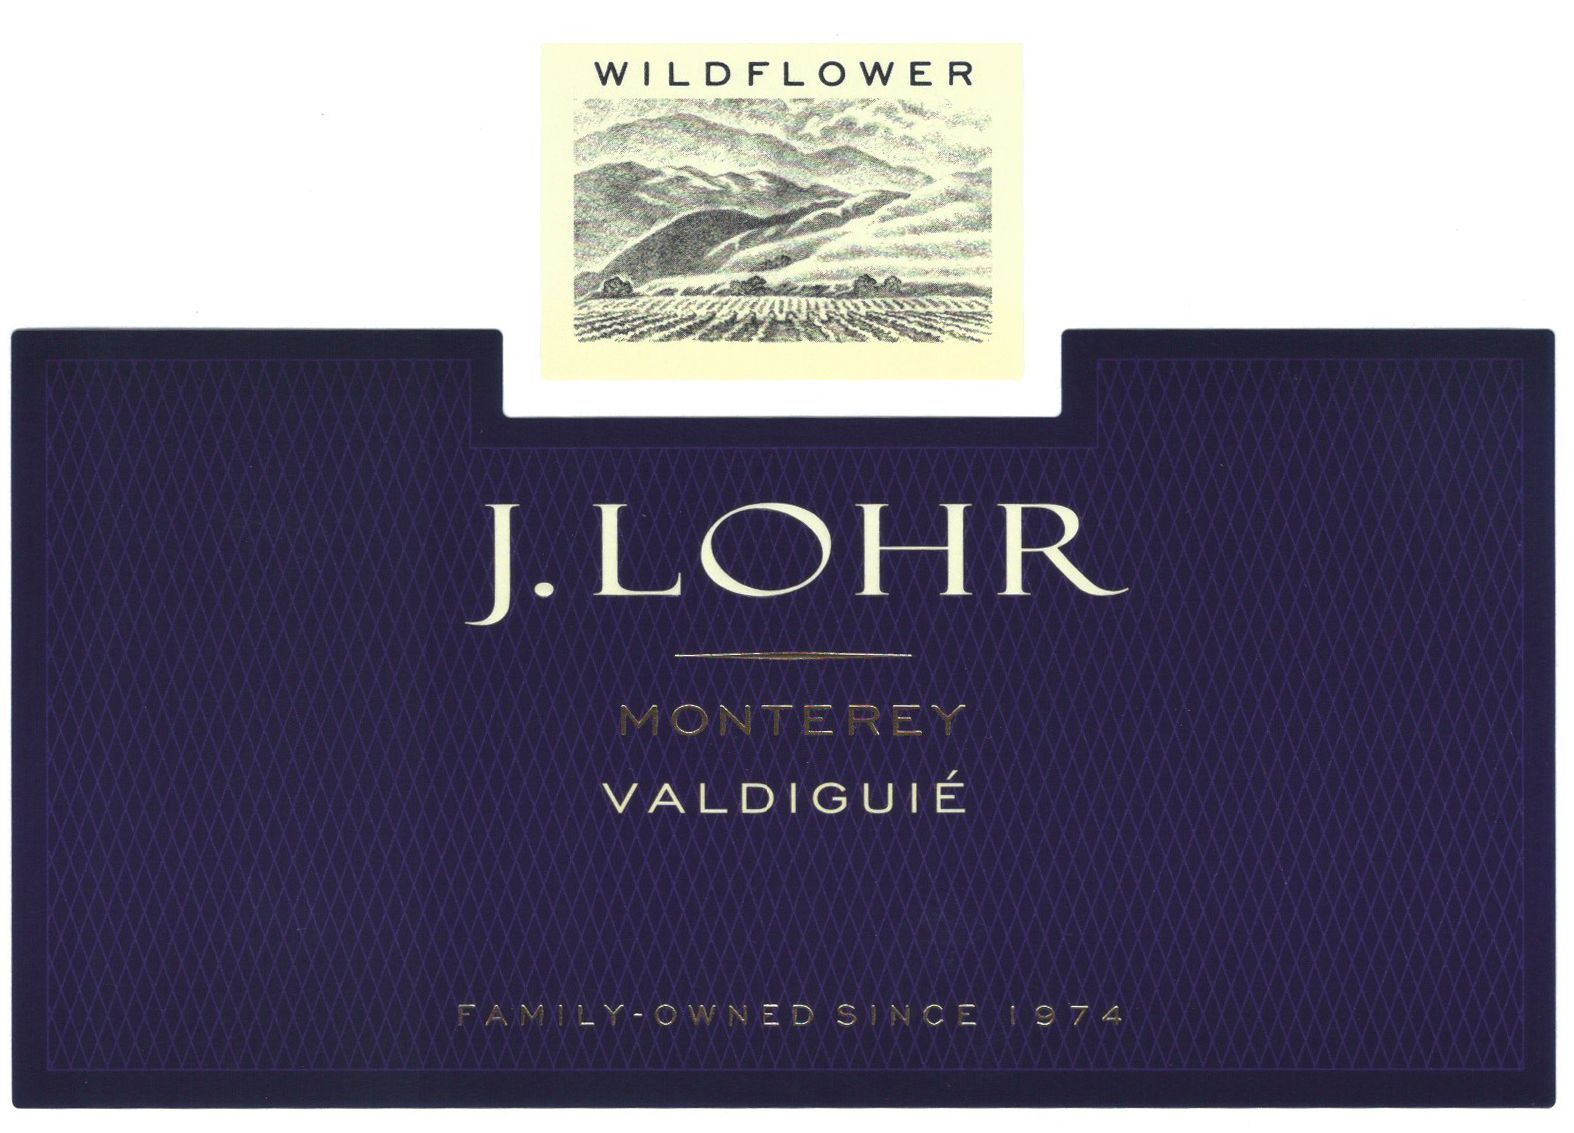 J. Lohr Wildflower Valdiguie 2017  Front Label